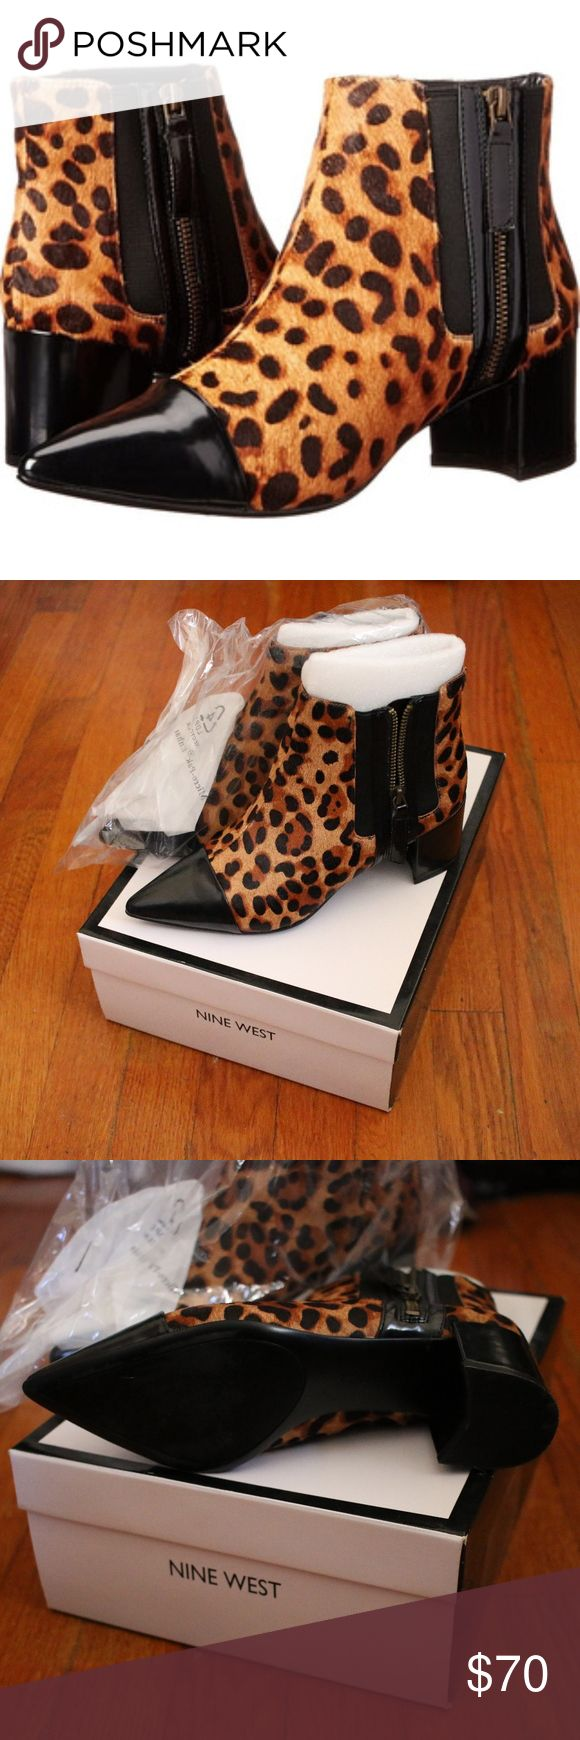 Nine West Wasabi Ankle Boot in Leopard Never worn and still in box with original packaging!  Pointed toe ankle boot with zipper.  The animal print is of real fur that is very short and lies flat--seems very durable.  The toe and heel of the boots are synthetic patent leather. Fits true to size.  Open to reasonable offers :) Nine West Shoes Ankle Boots & Booties